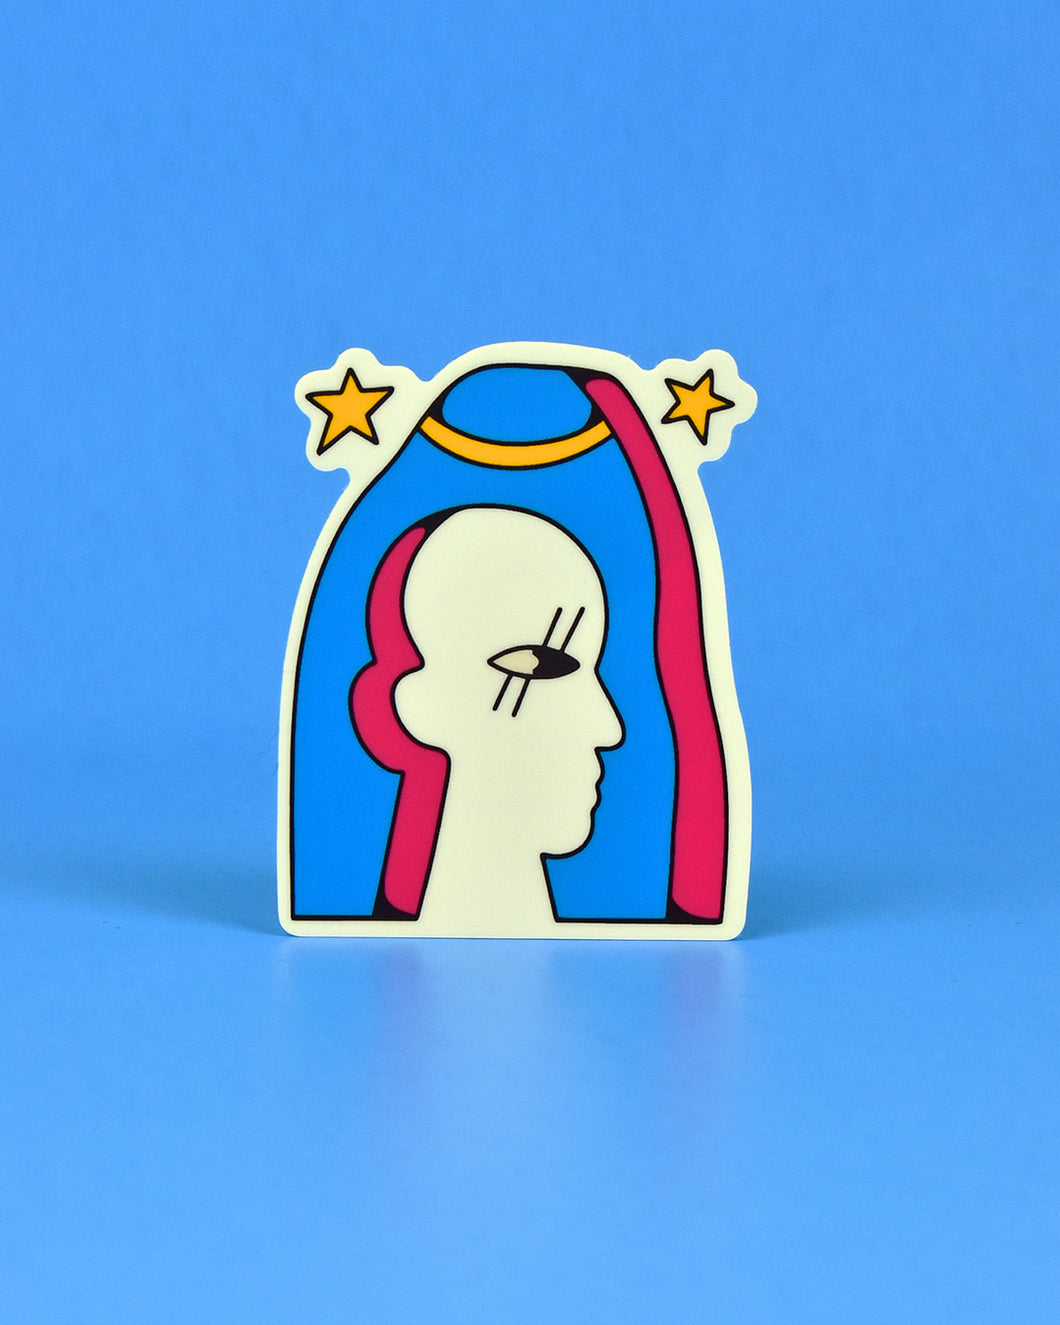 With a stone cold expression to die for, this Crocodile Jackson sticker will win you over with it's beauty and simplicity. Vinyl sticker of a blue slab with the silhouette of a person cut out of it, revealing pink edges. A single eye is shown with parallel and straight eyelashes. Slab features a golden band and 2 yellow stars.